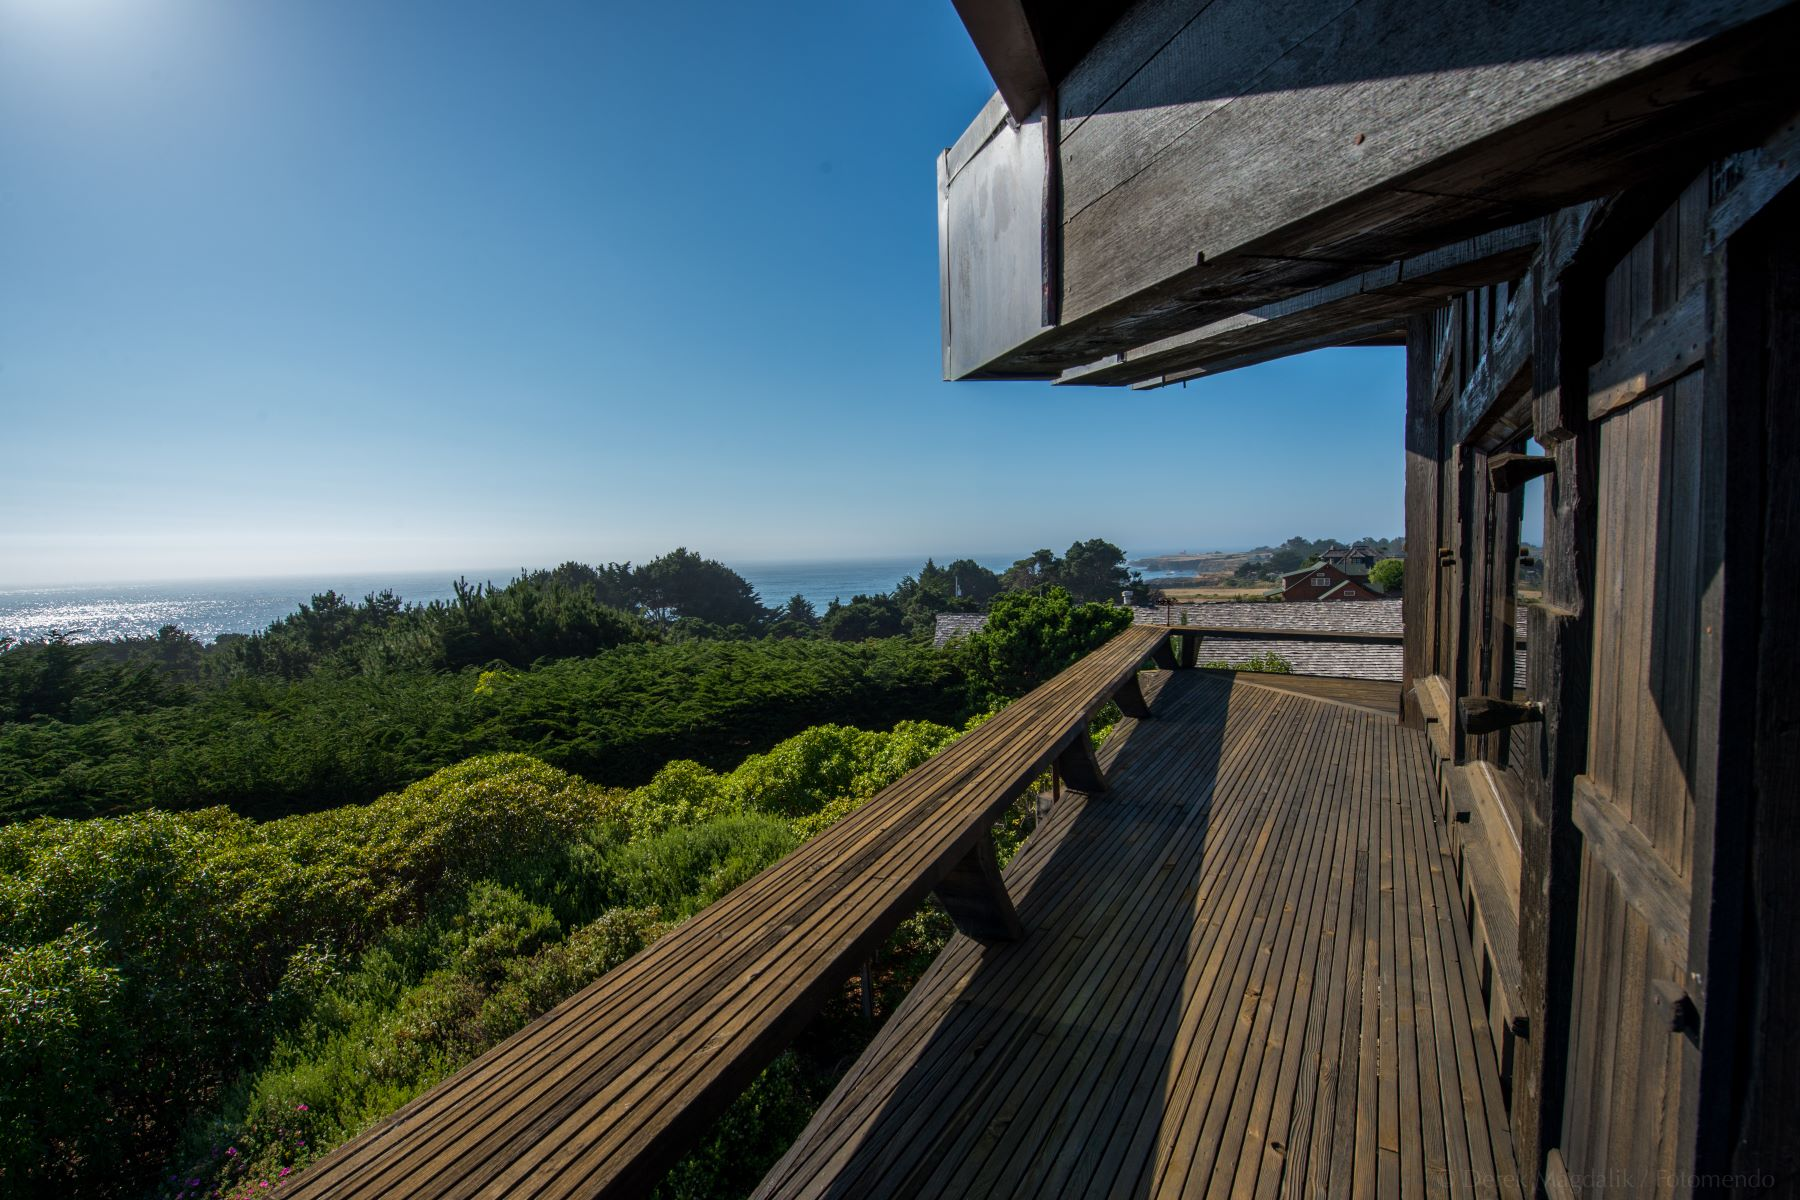 Additional photo for property listing at Ocean View Timbers 45621 Cypress Drive Mendocino, California 95460 United States